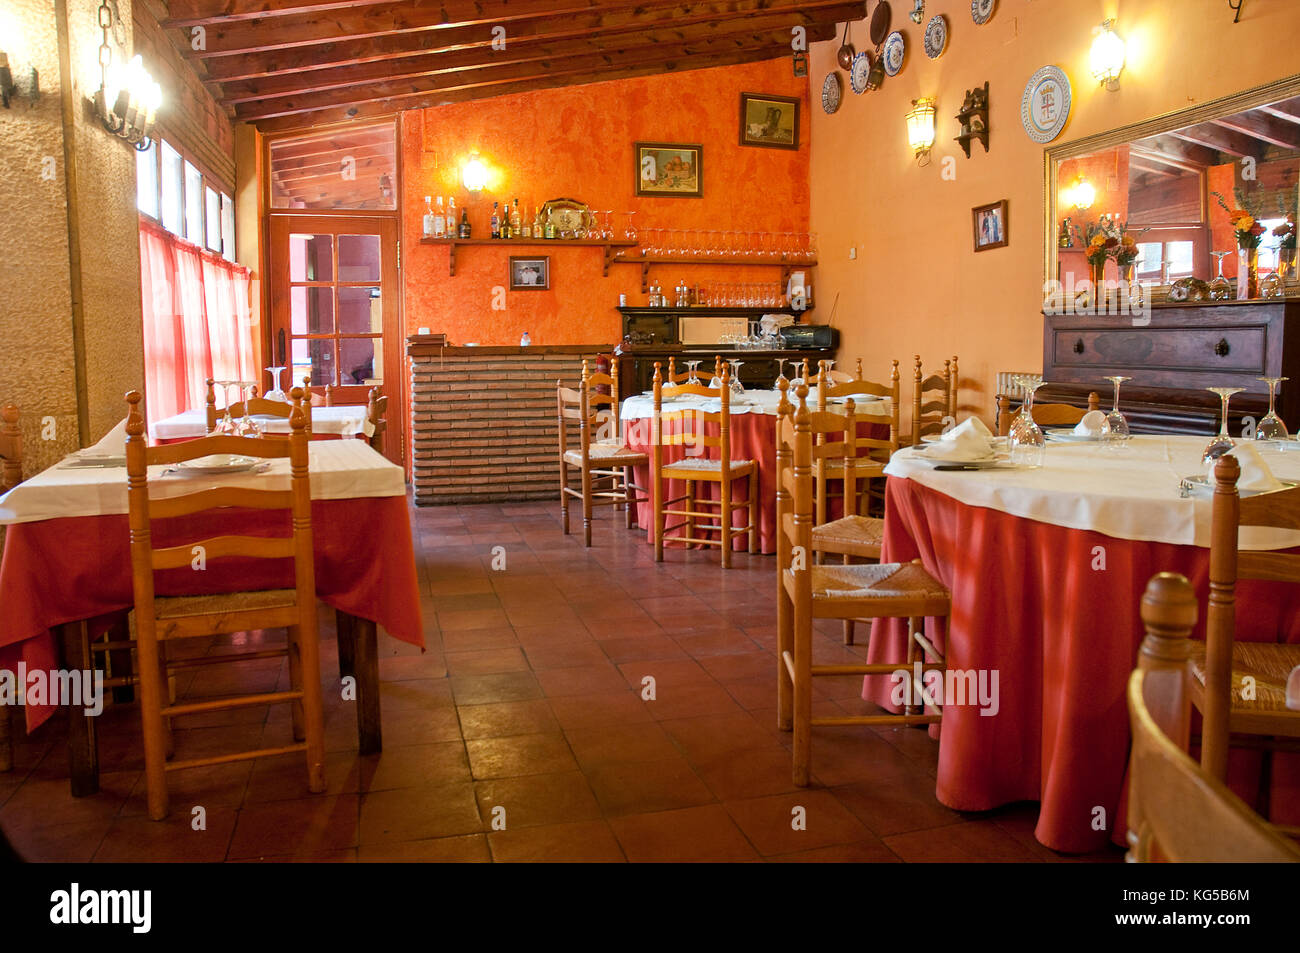 Decoraci N Stock Photos Decoraci N Stock Images Alamy # Muebles Bodega Lm